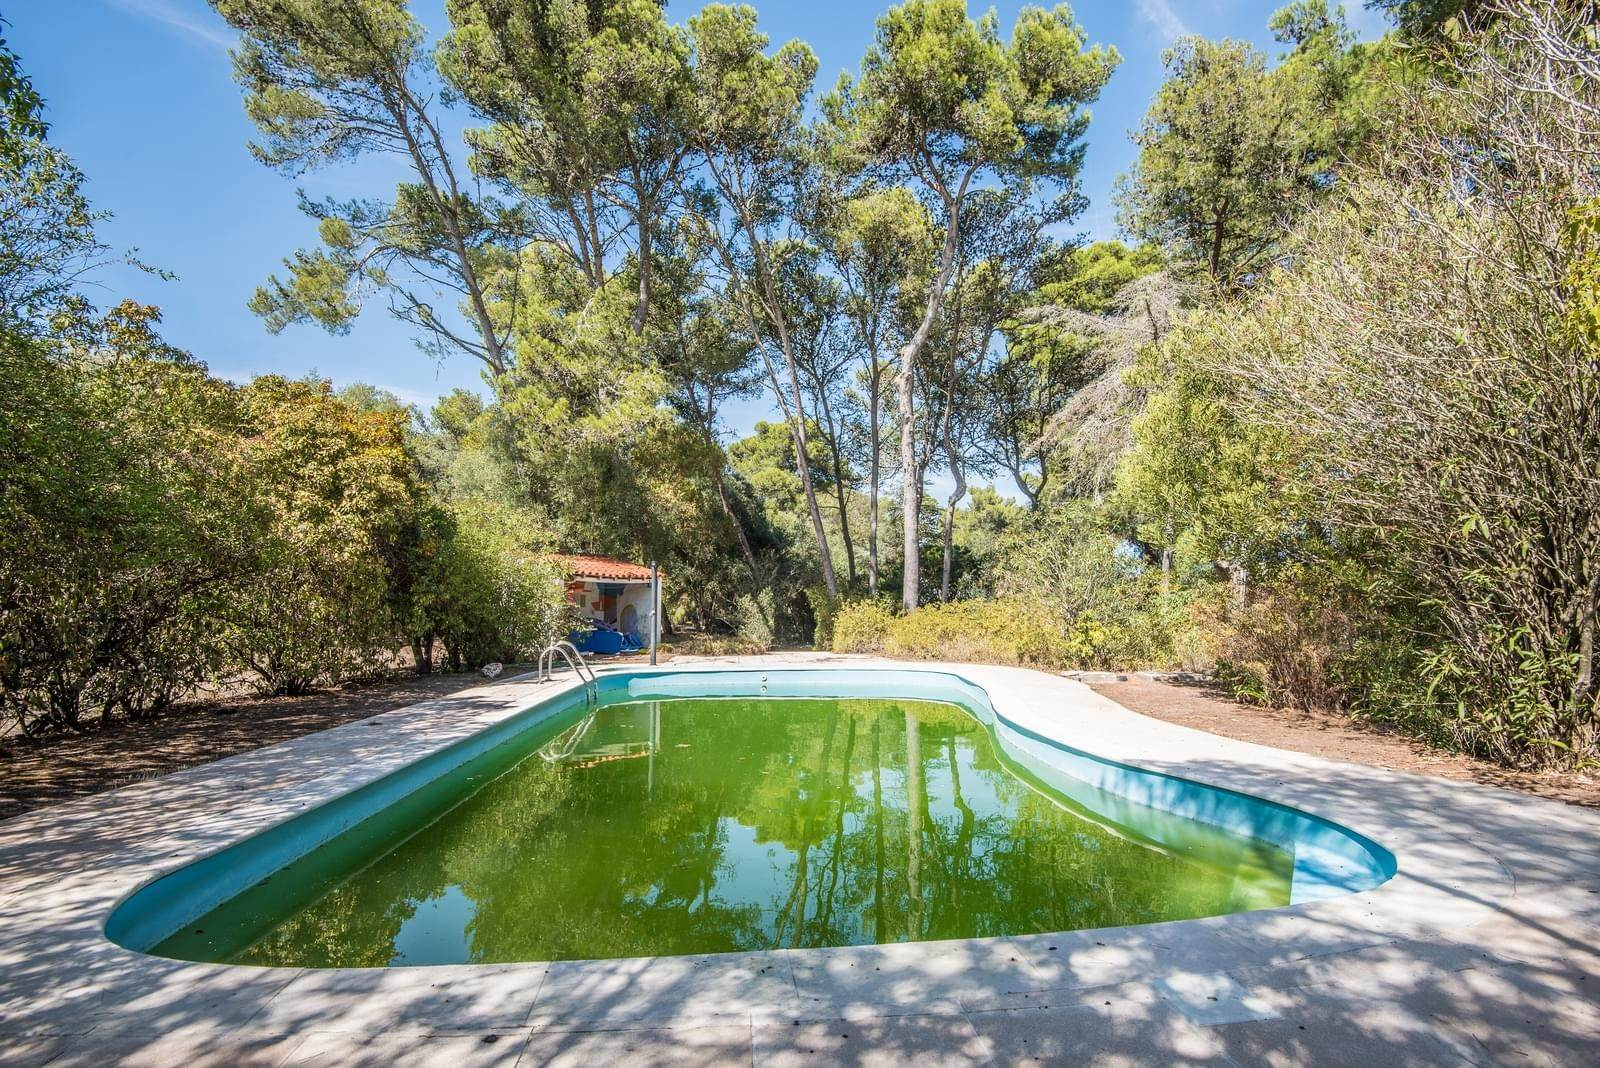 18. 別墅 / 联排别墅 為 出售 在 Unique property, located next to Quinta da Marinha, a quiet area.The property comprises six small villas, with deep refu... Cascais, 葡萄牙